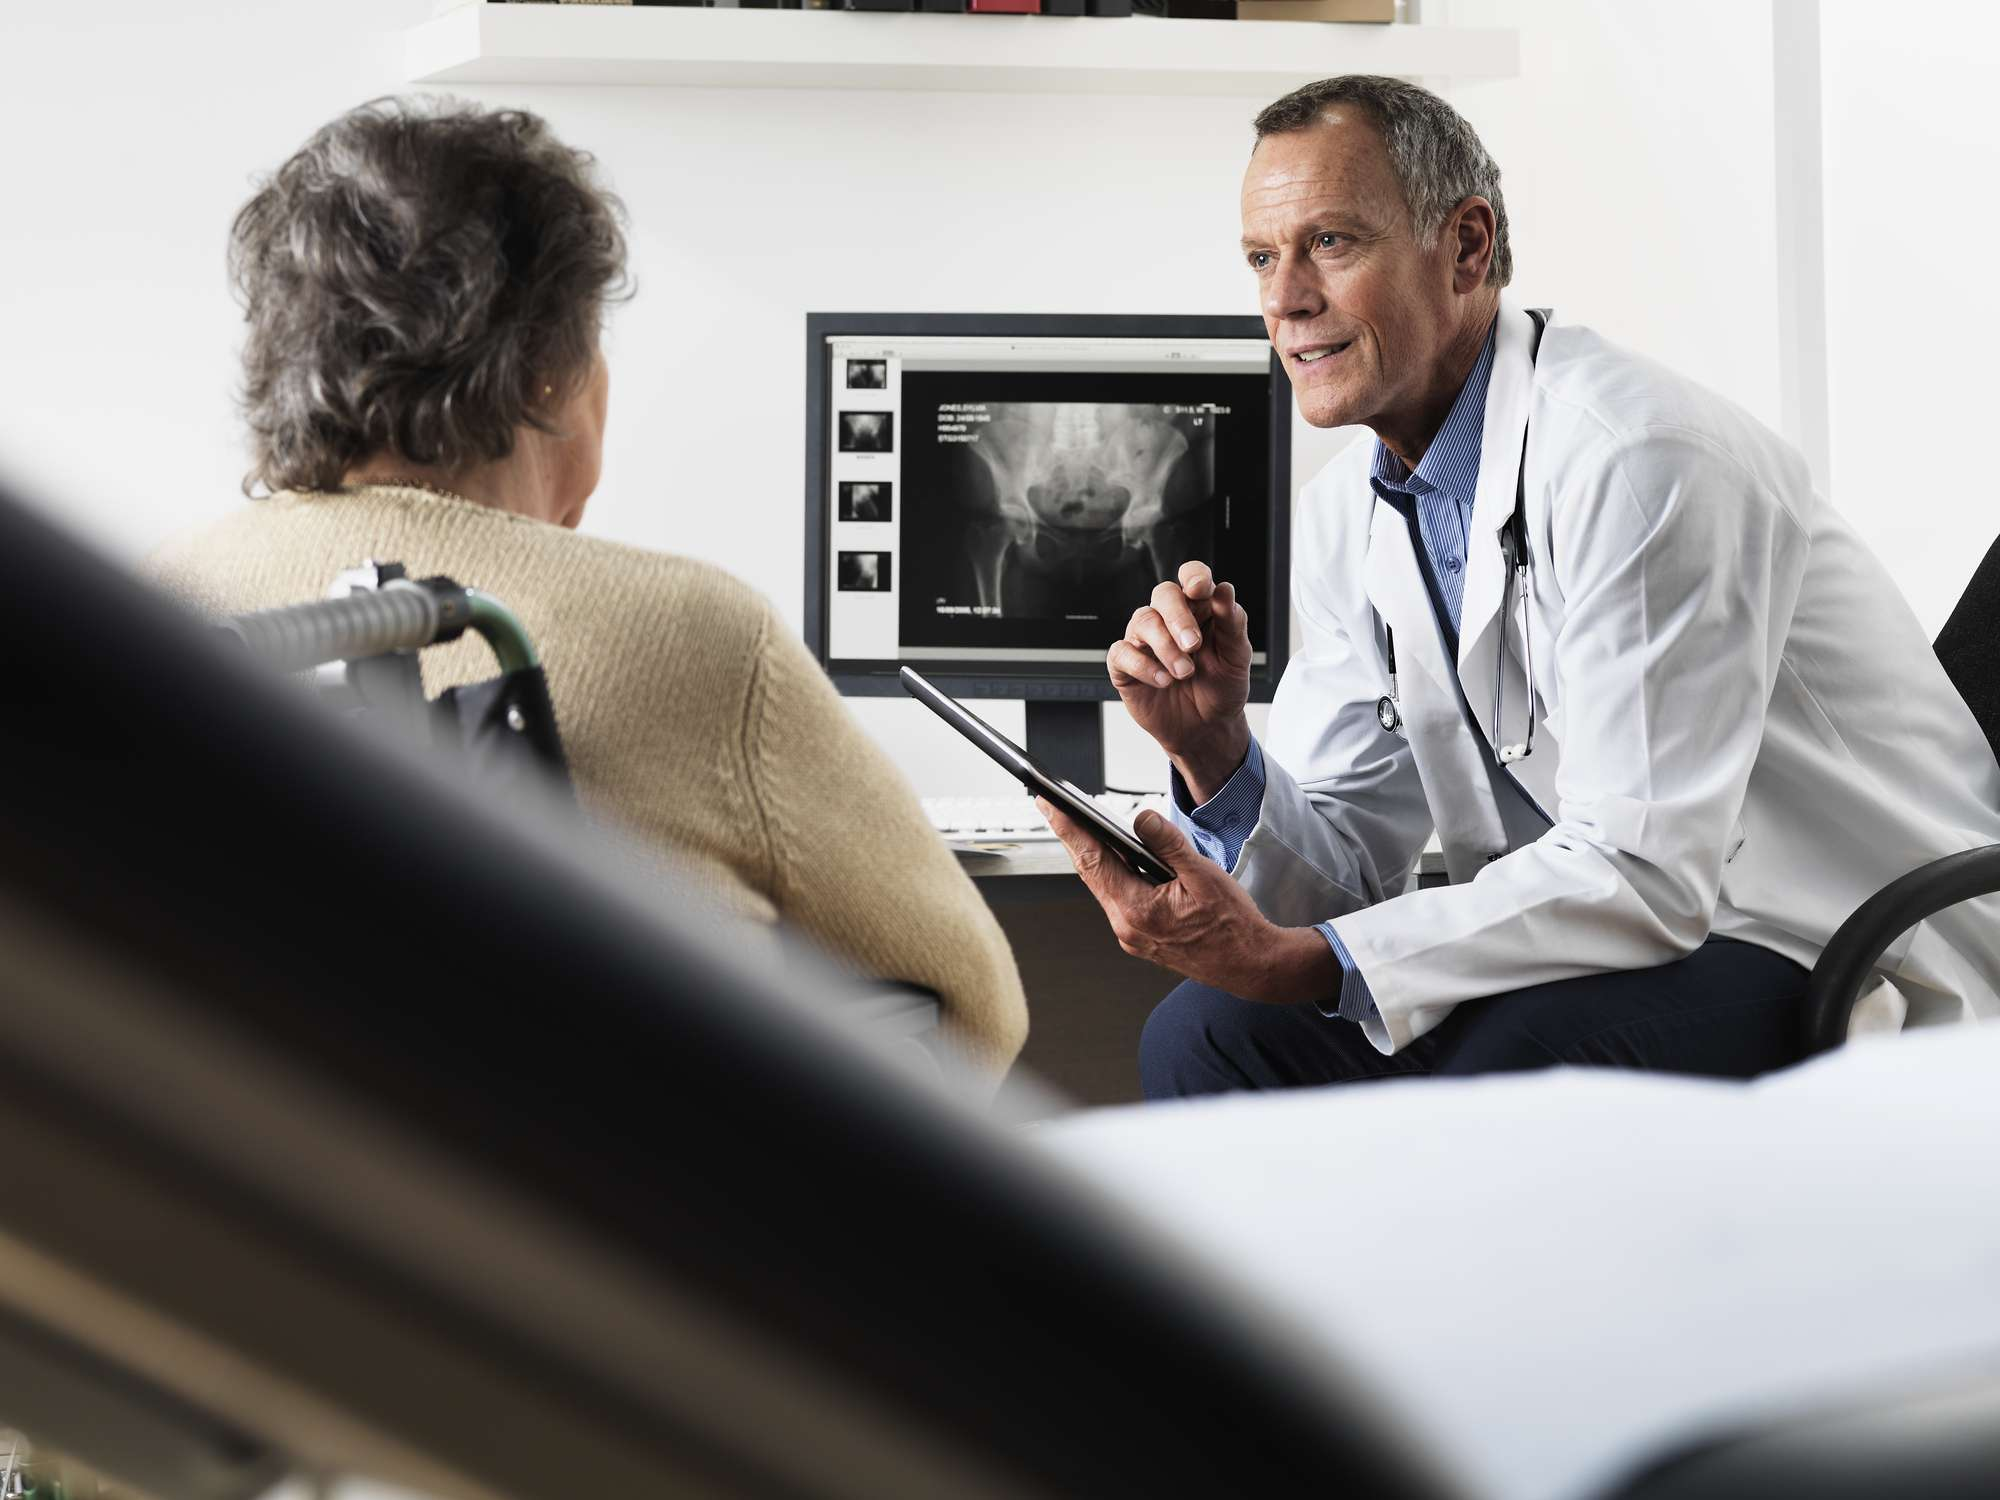 A doctor talking with his patient